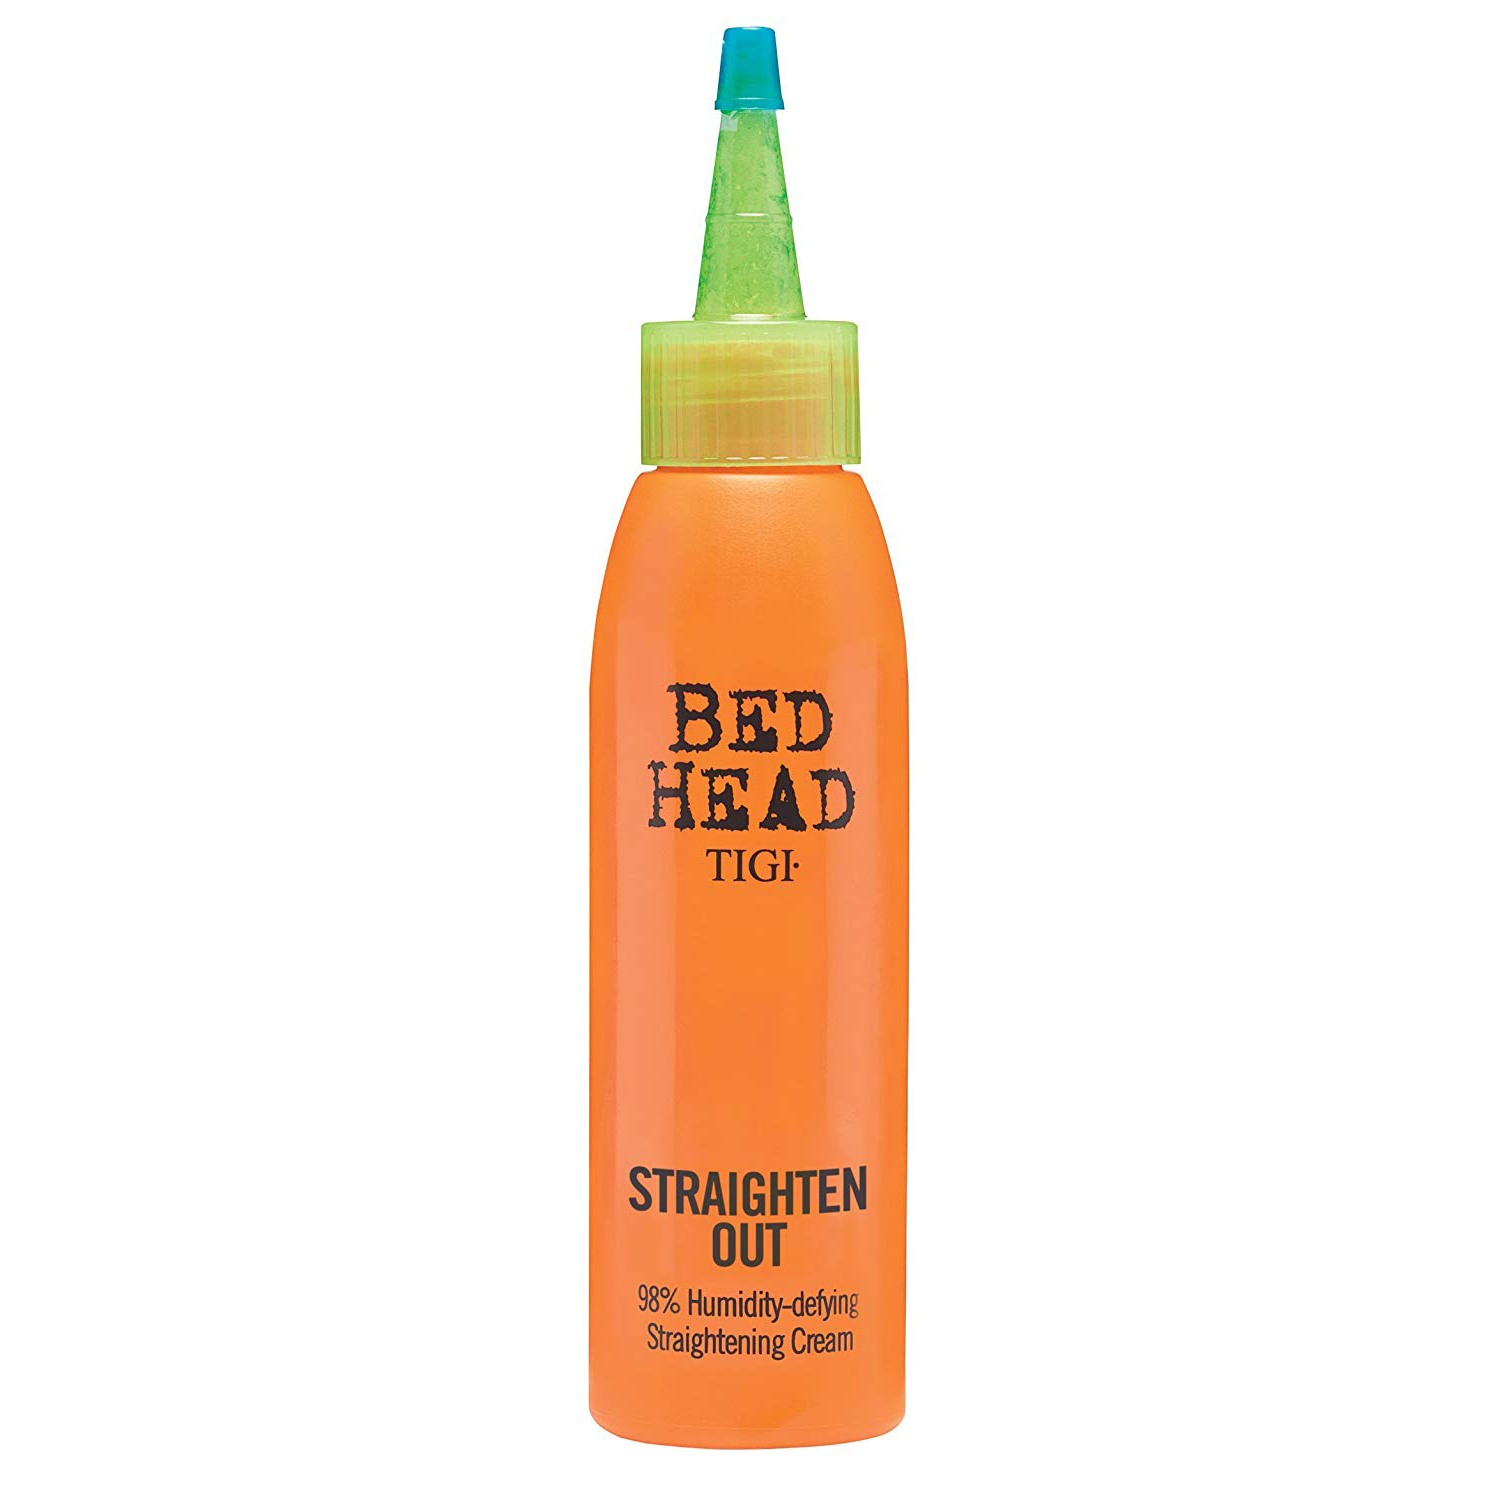 Bed Head Straighten Out Humidity Defying Straightening Cream